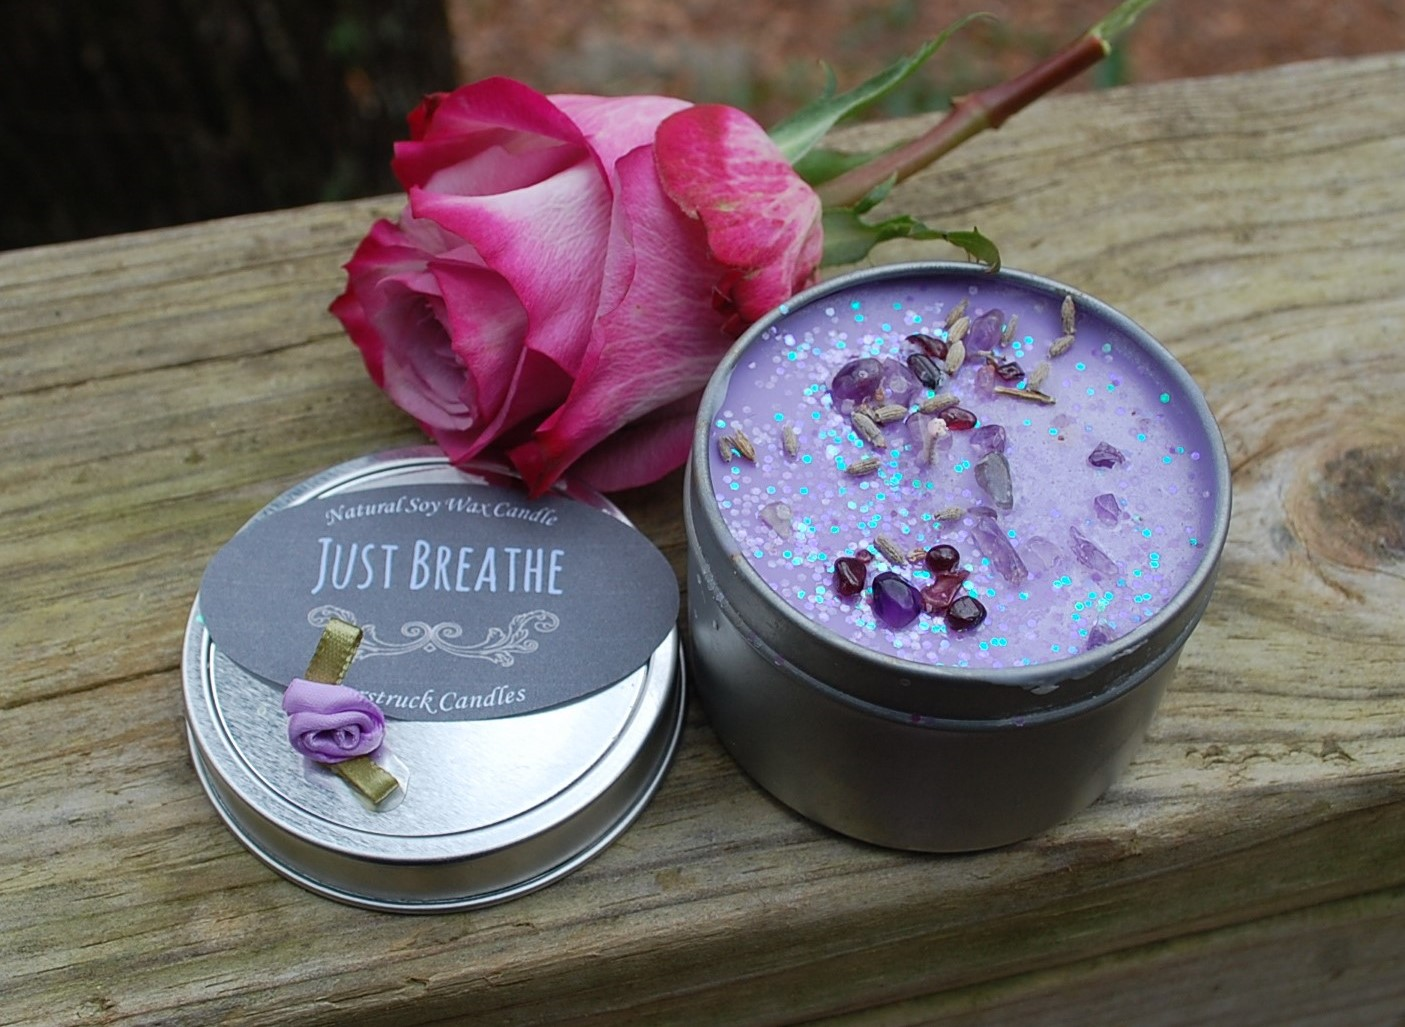 Wholesale Candles Relaxation Gifts Flower Candles Lilac Scented Candle